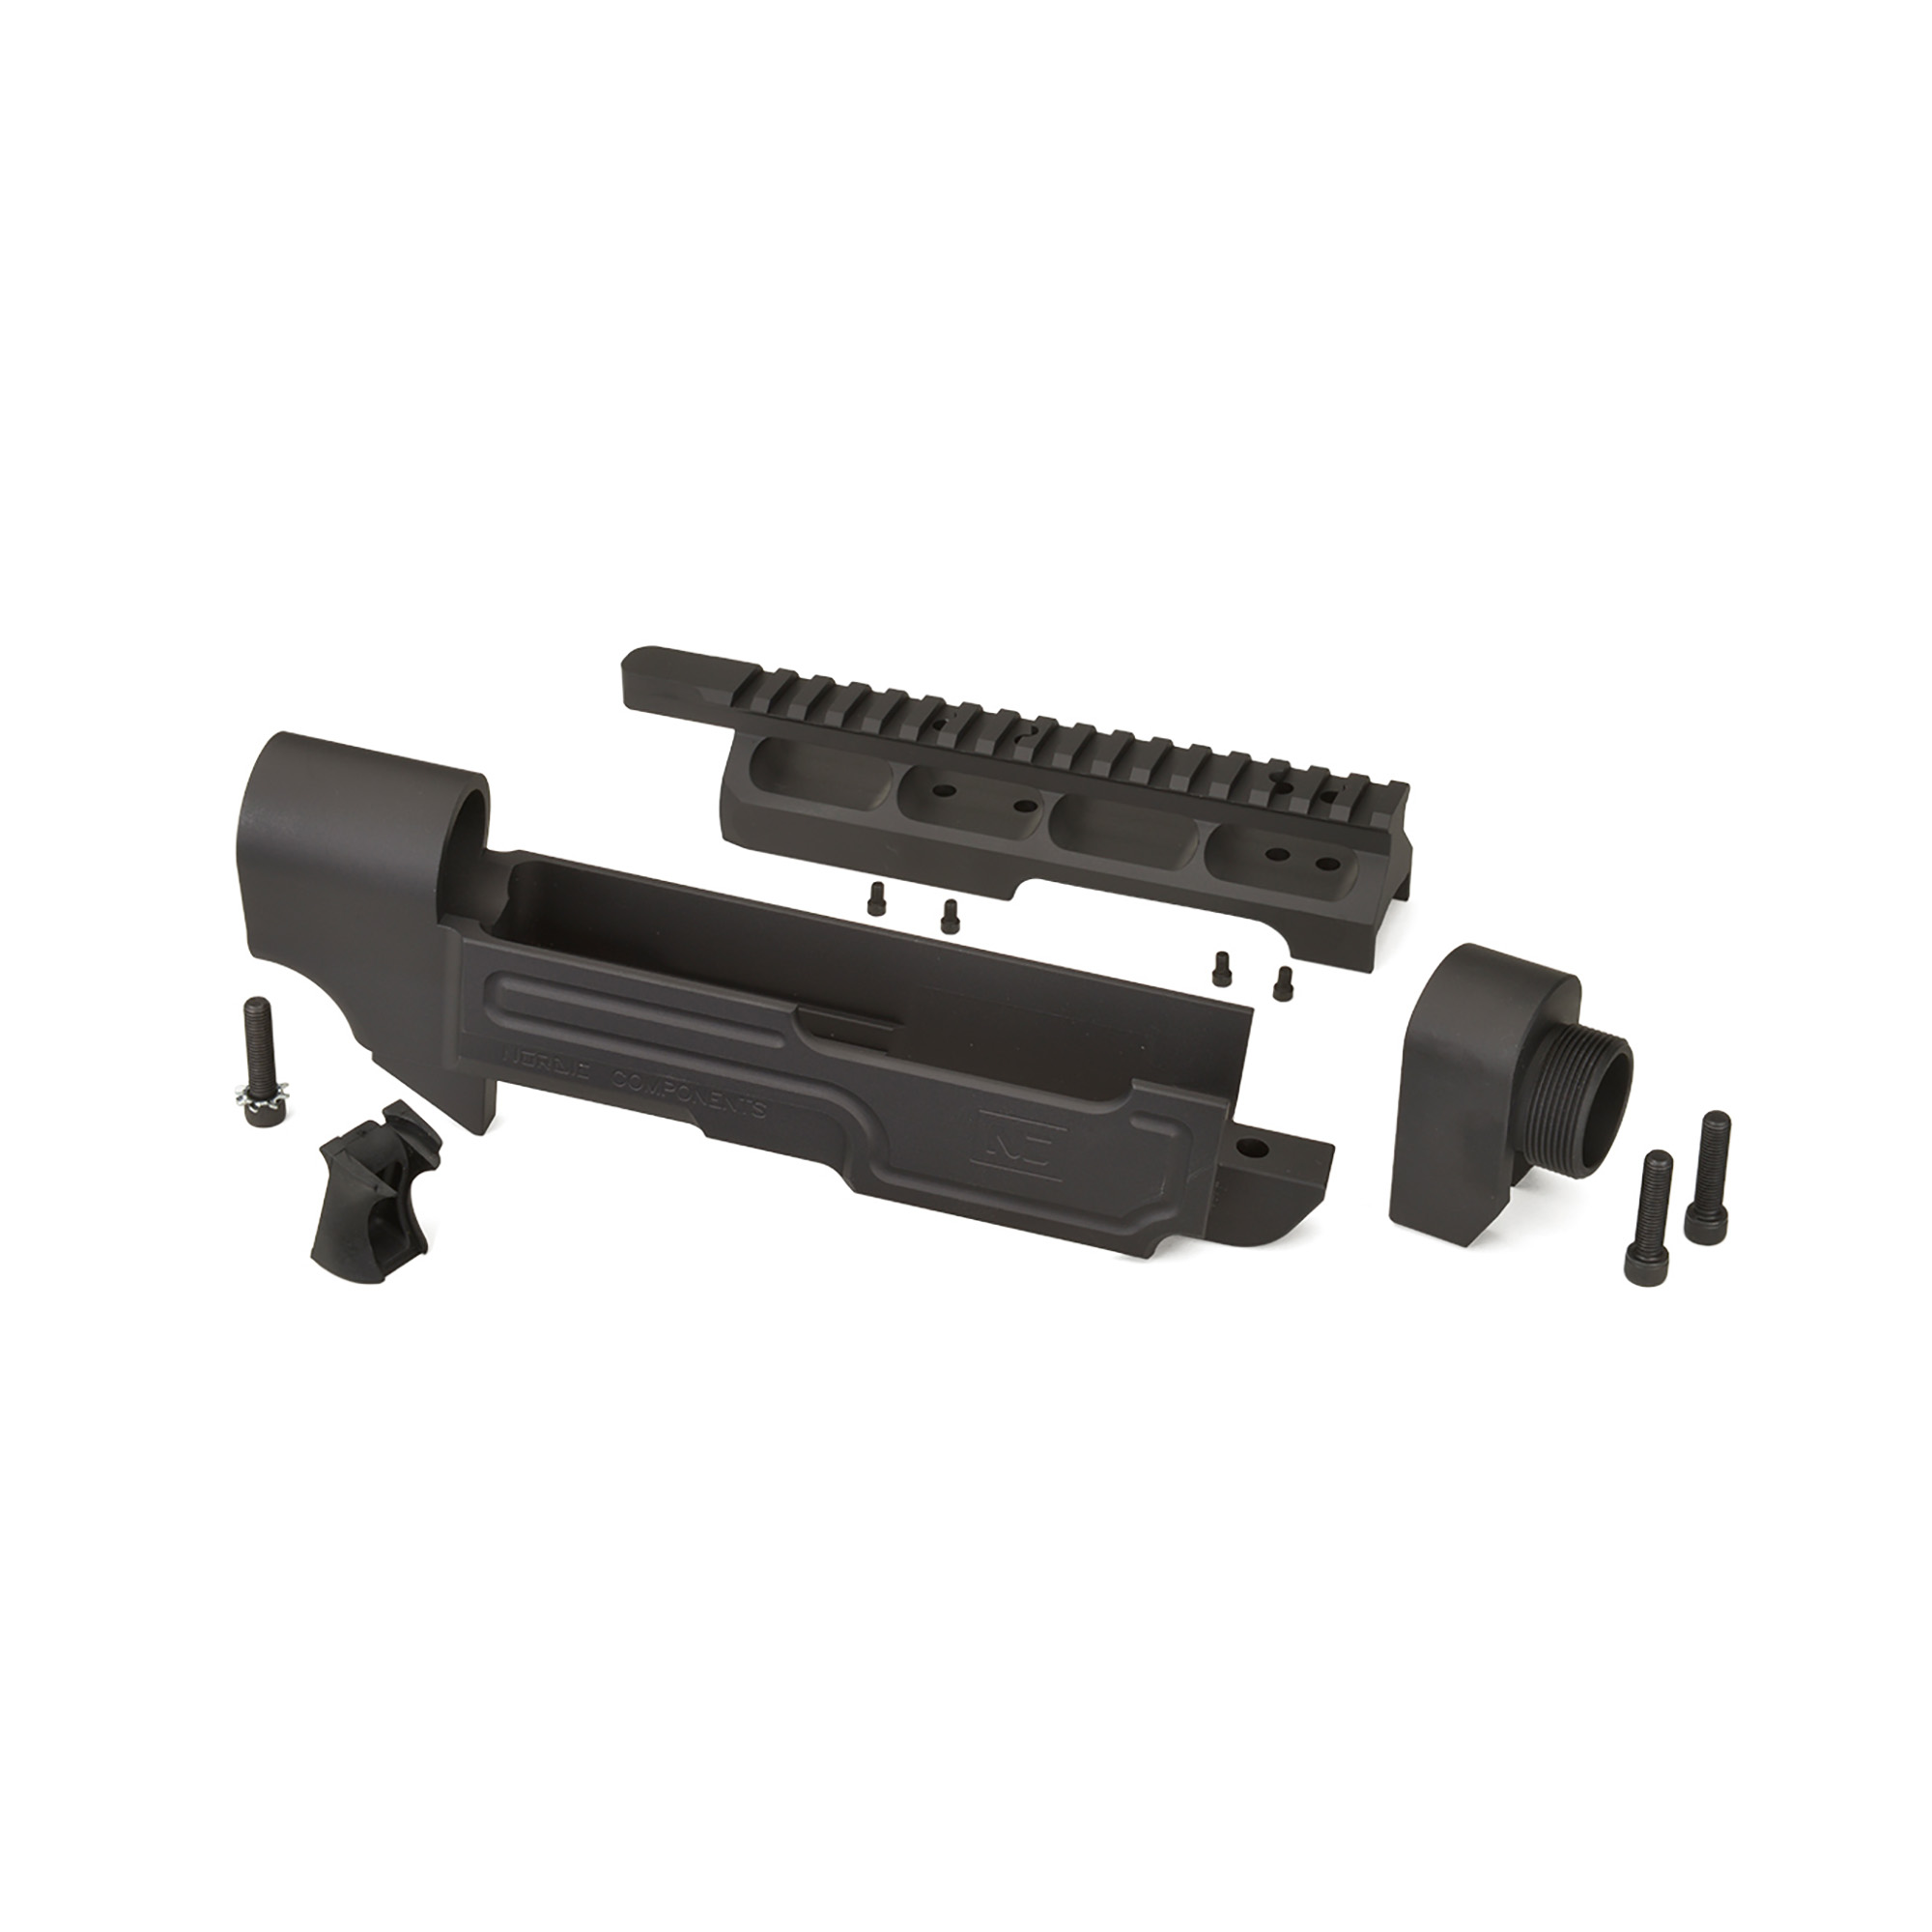 """Nordic Components AR22 Three Piece Stock kit is for converting your Ruger 10/22. It converts the 10/22 stock pattern over to a modular AR-style system. The integral Picatinny top rail accommodates scope mounts and other accessories. Kit includes the lower main body"""" scope mount"""" forearm adapter"""" Nordic Components Gapper"""" mounting hardware and instructions. Not compatible with Takedown Models."""